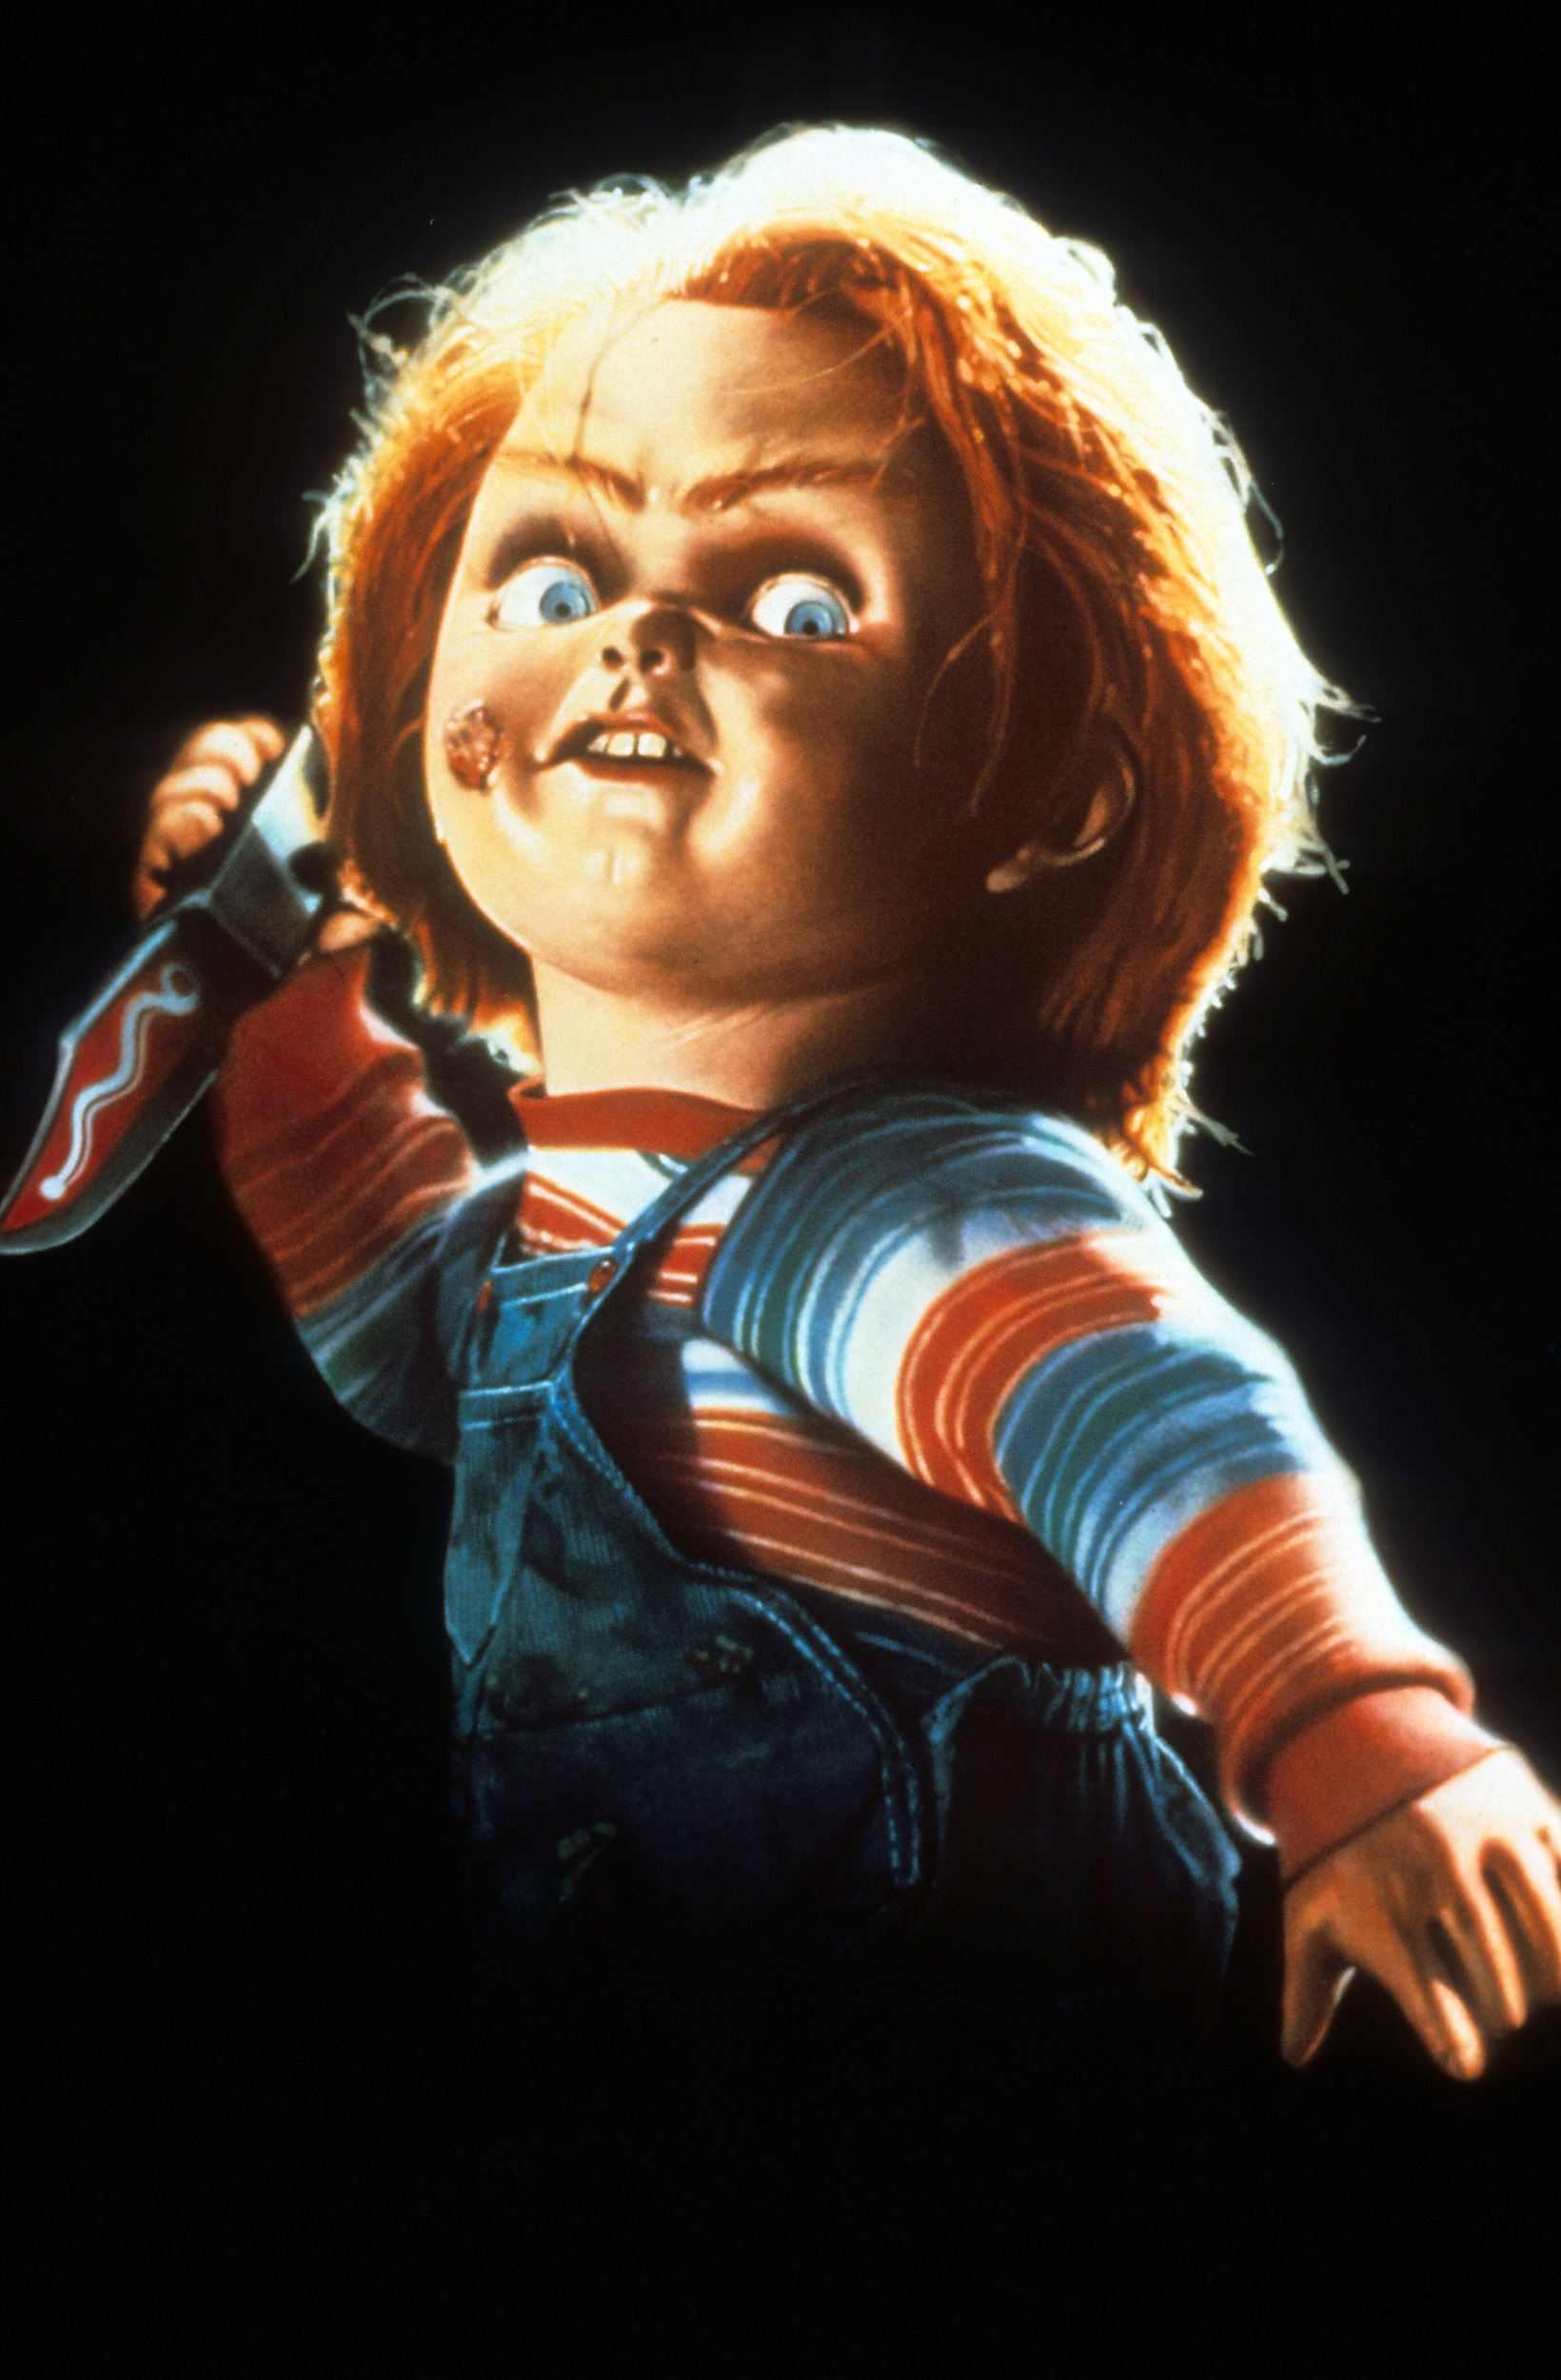 Chucky Horror Film Wiki Fandom Powered By Wikia